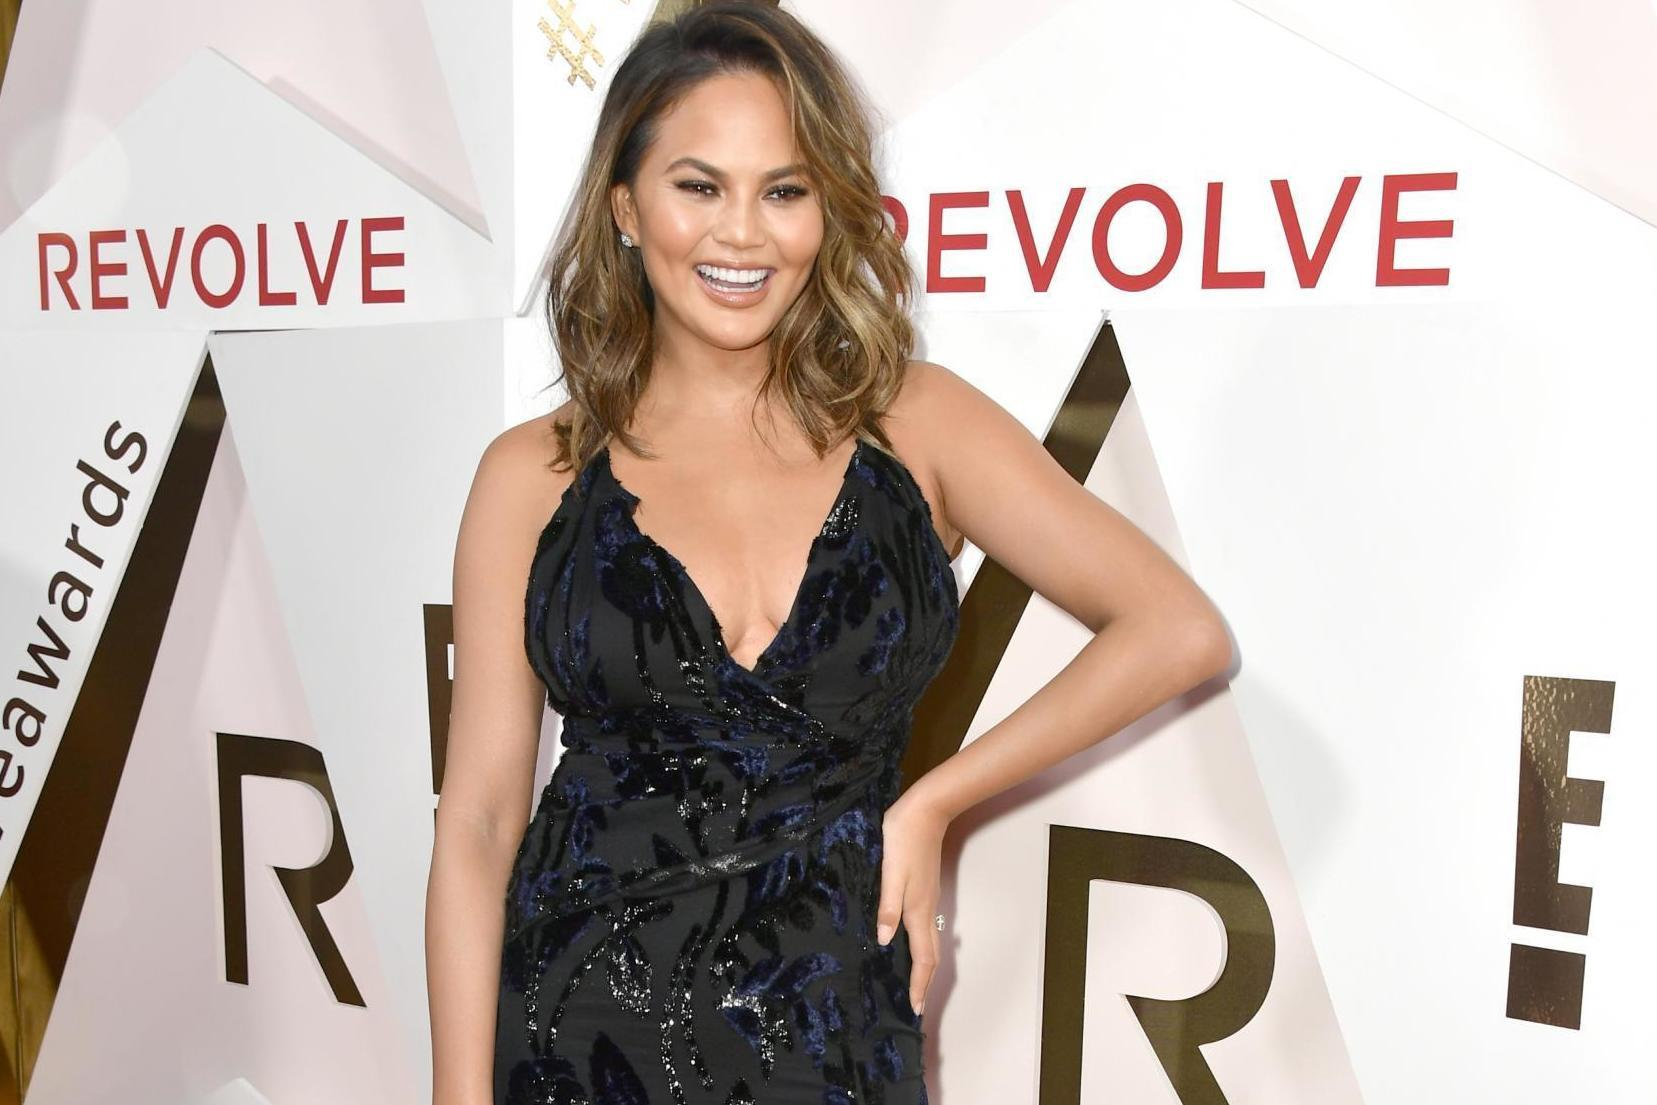 0ecca7fbae0 Chrissy Teigen mocks college admissions scandal with hilarious photos. '